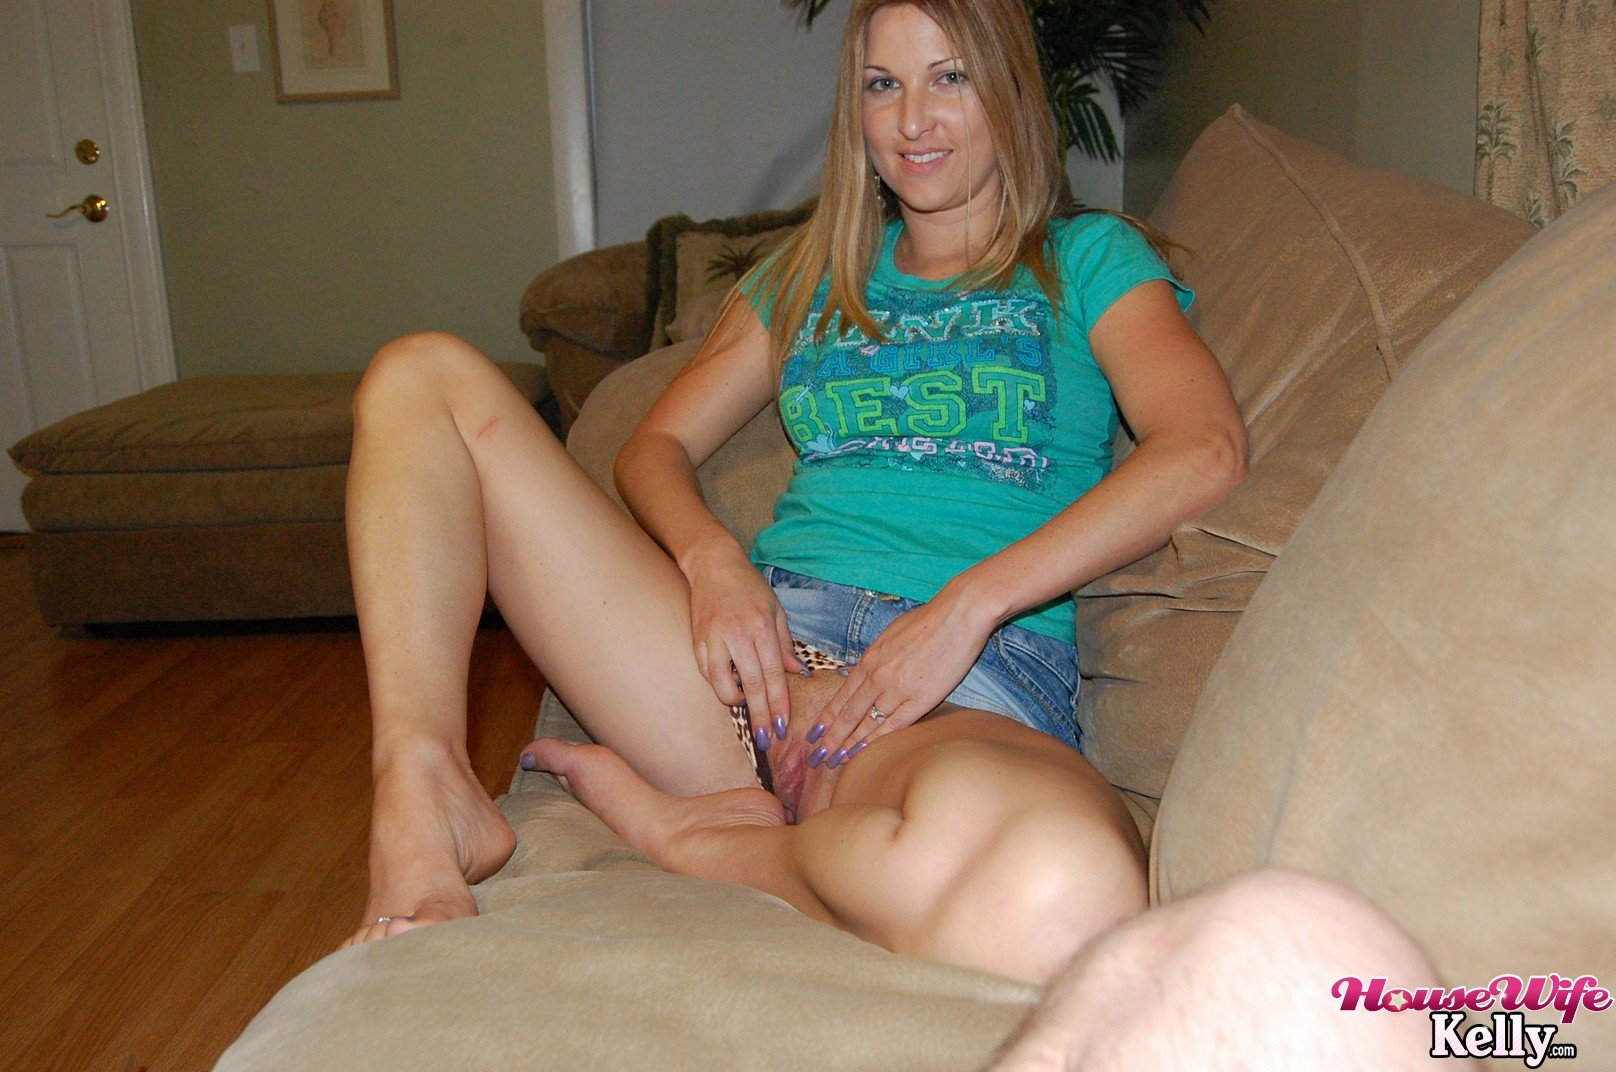 Housewife kelly creampie